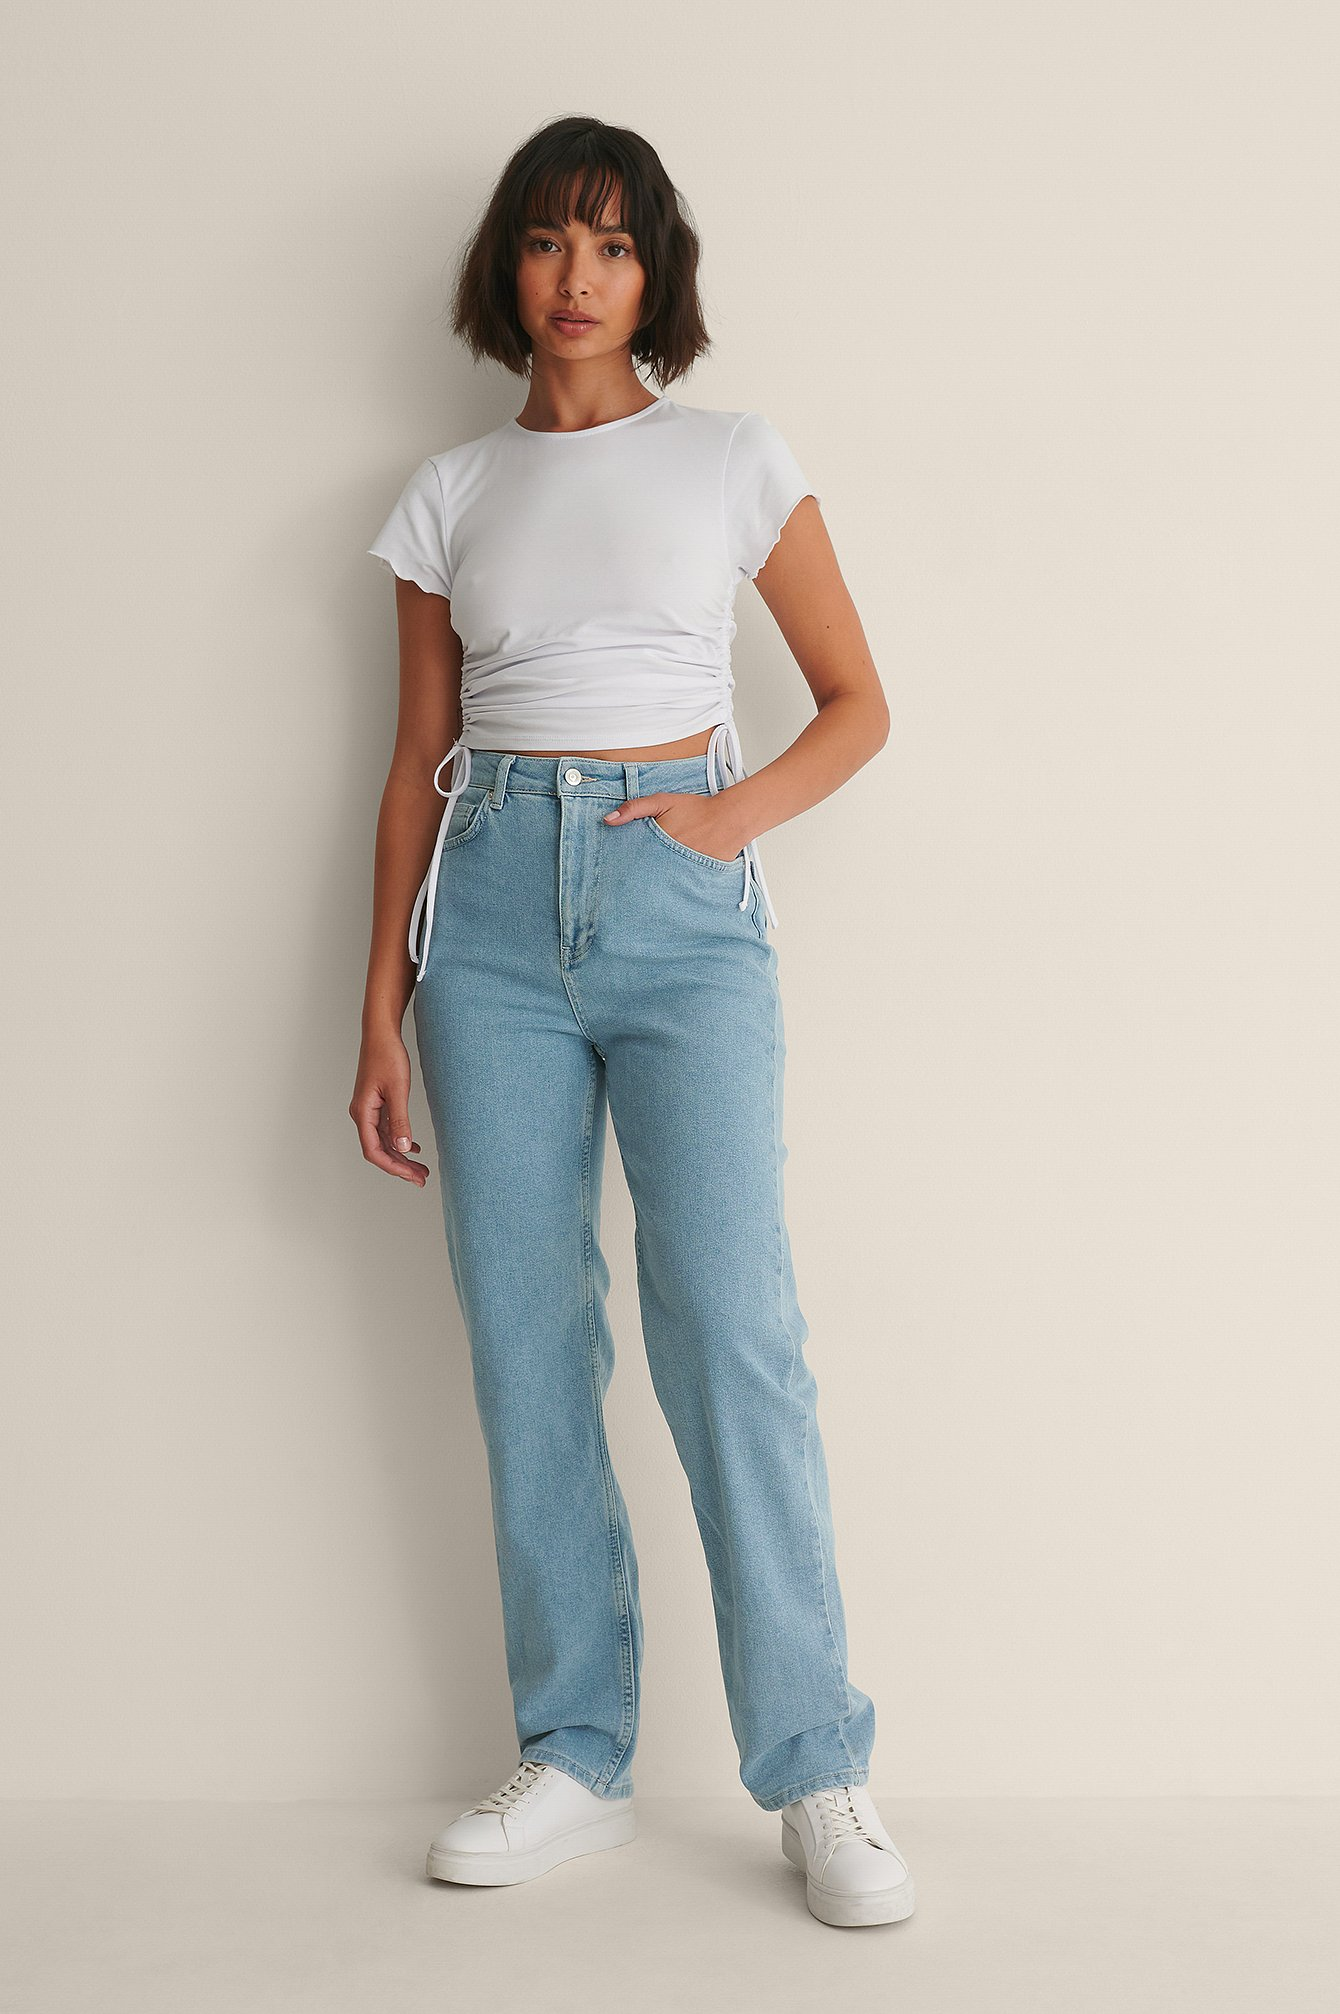 Light Wash Light Wash Straight Jeans